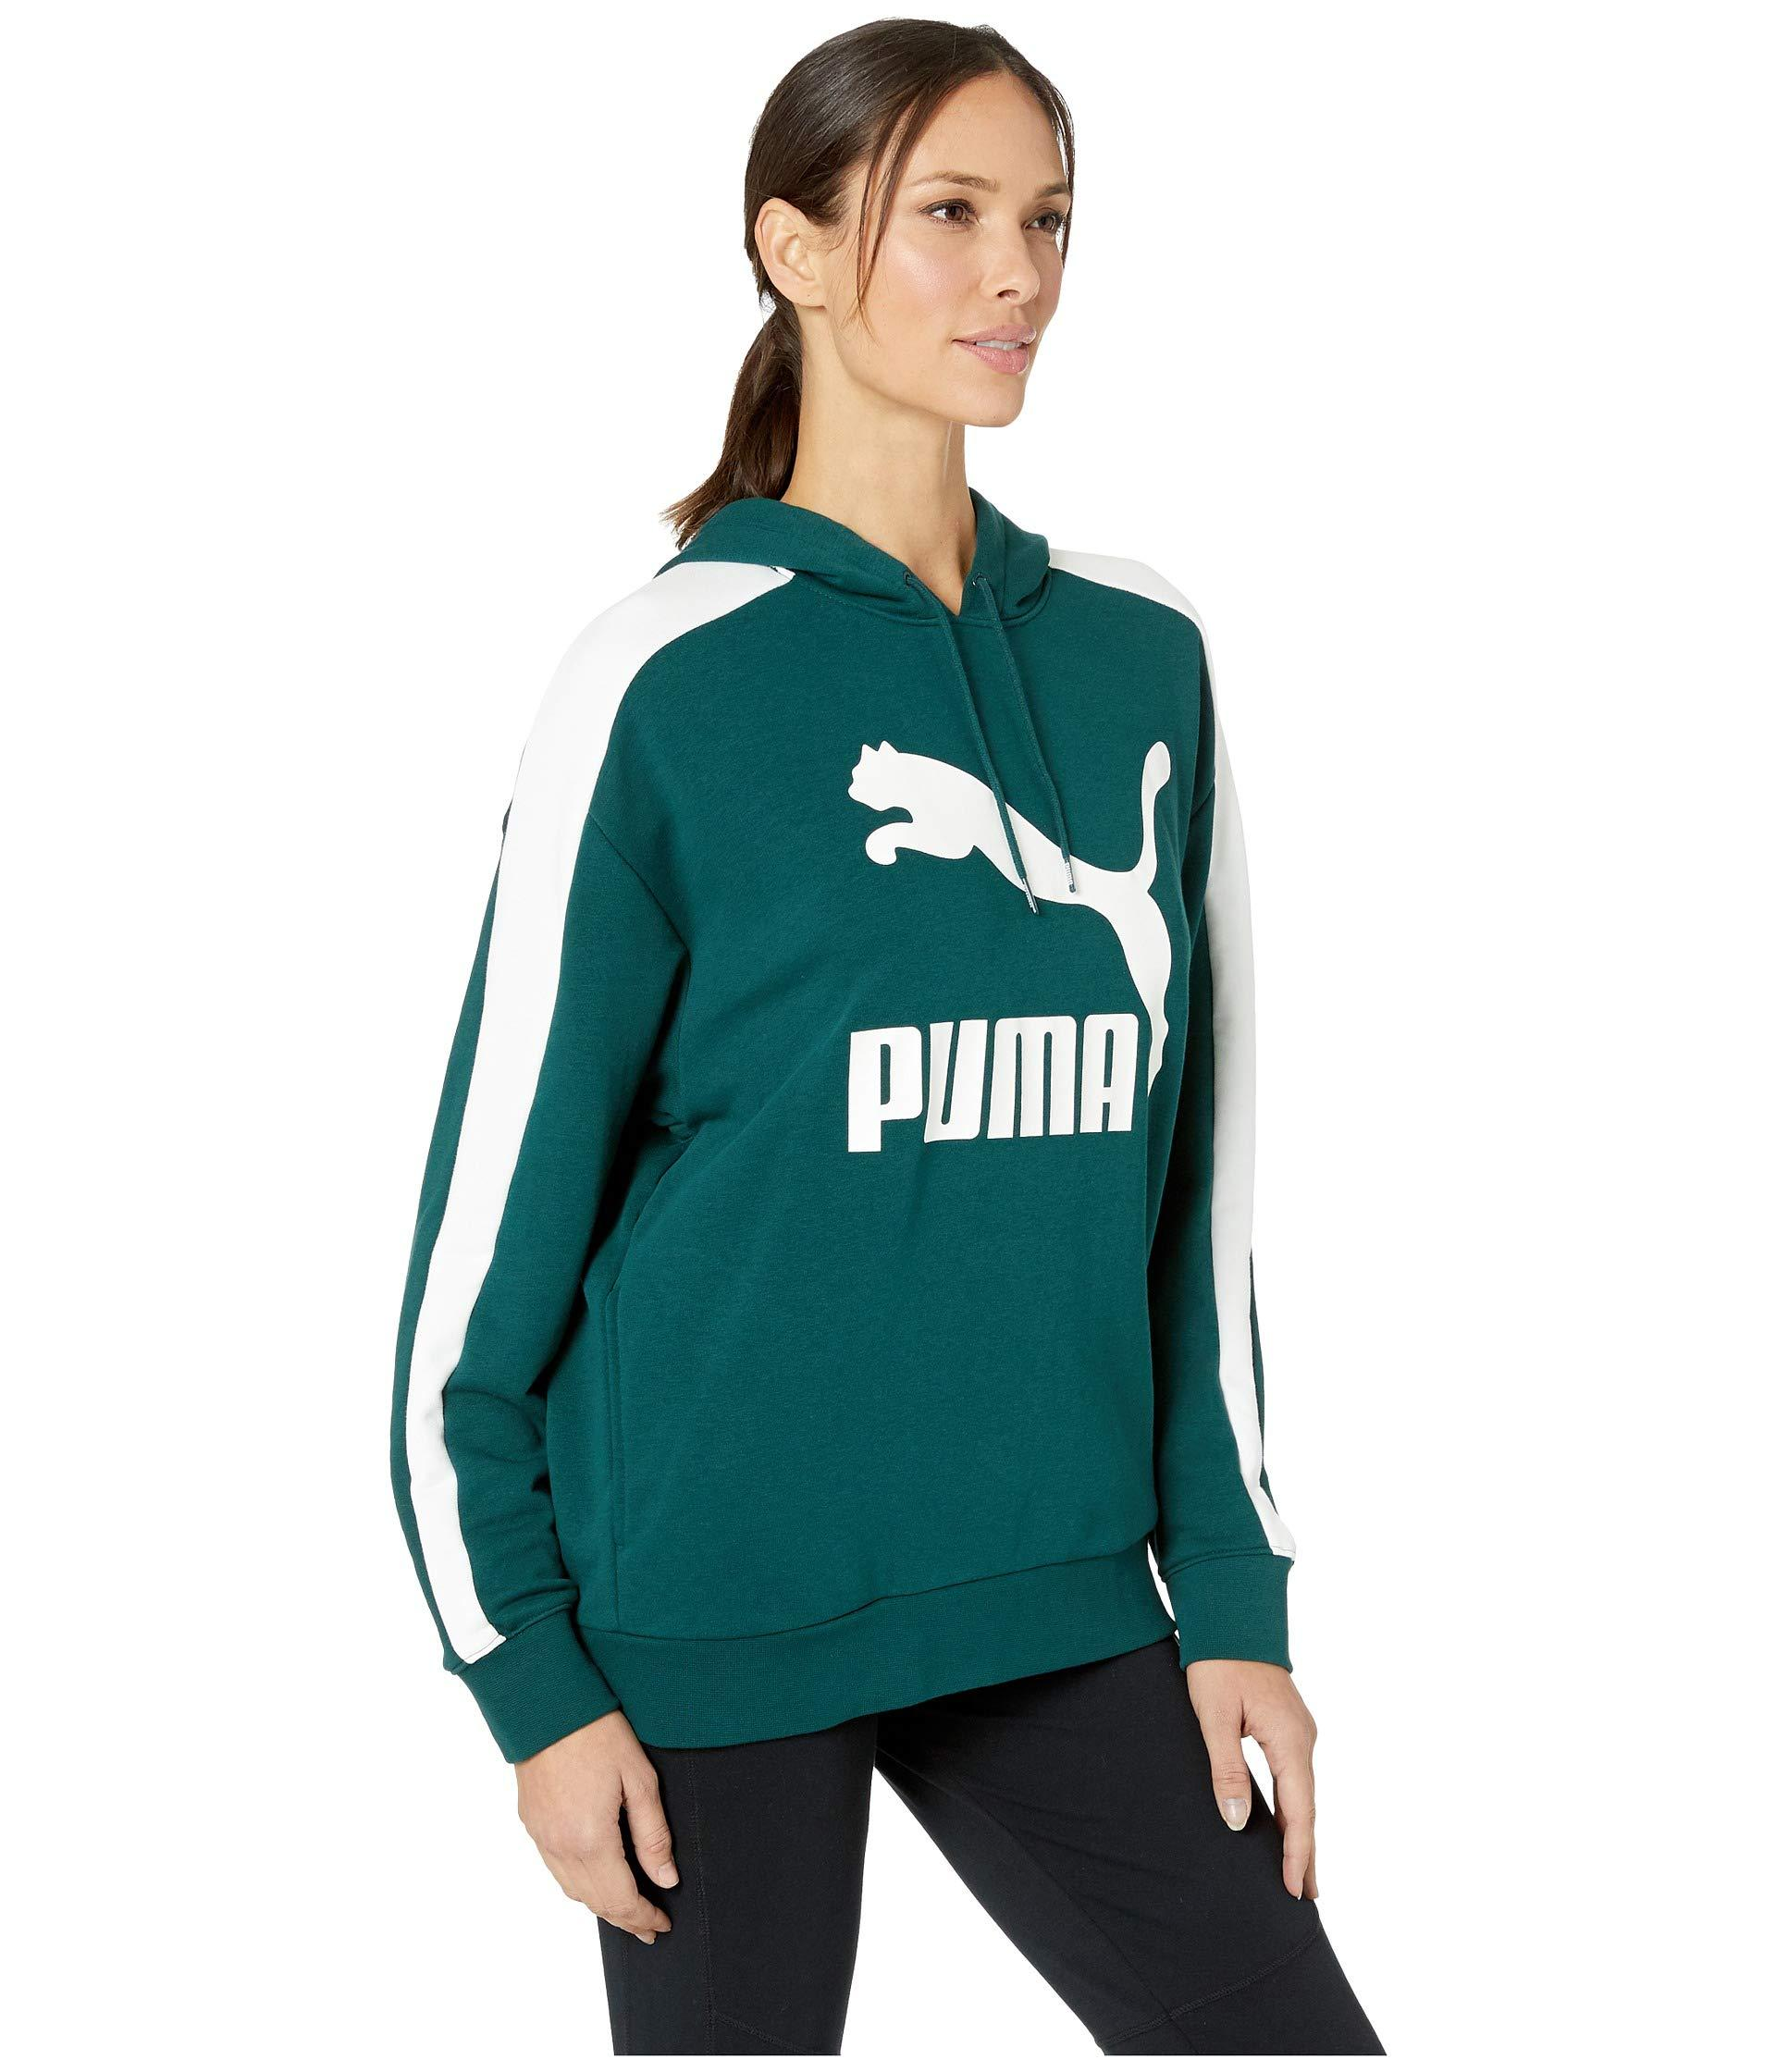 b2d428ca4061 PUMA - Green Classics Logo T7 Hoodie (cotton Black metal) Women s Sweatshirt  -. View fullscreen